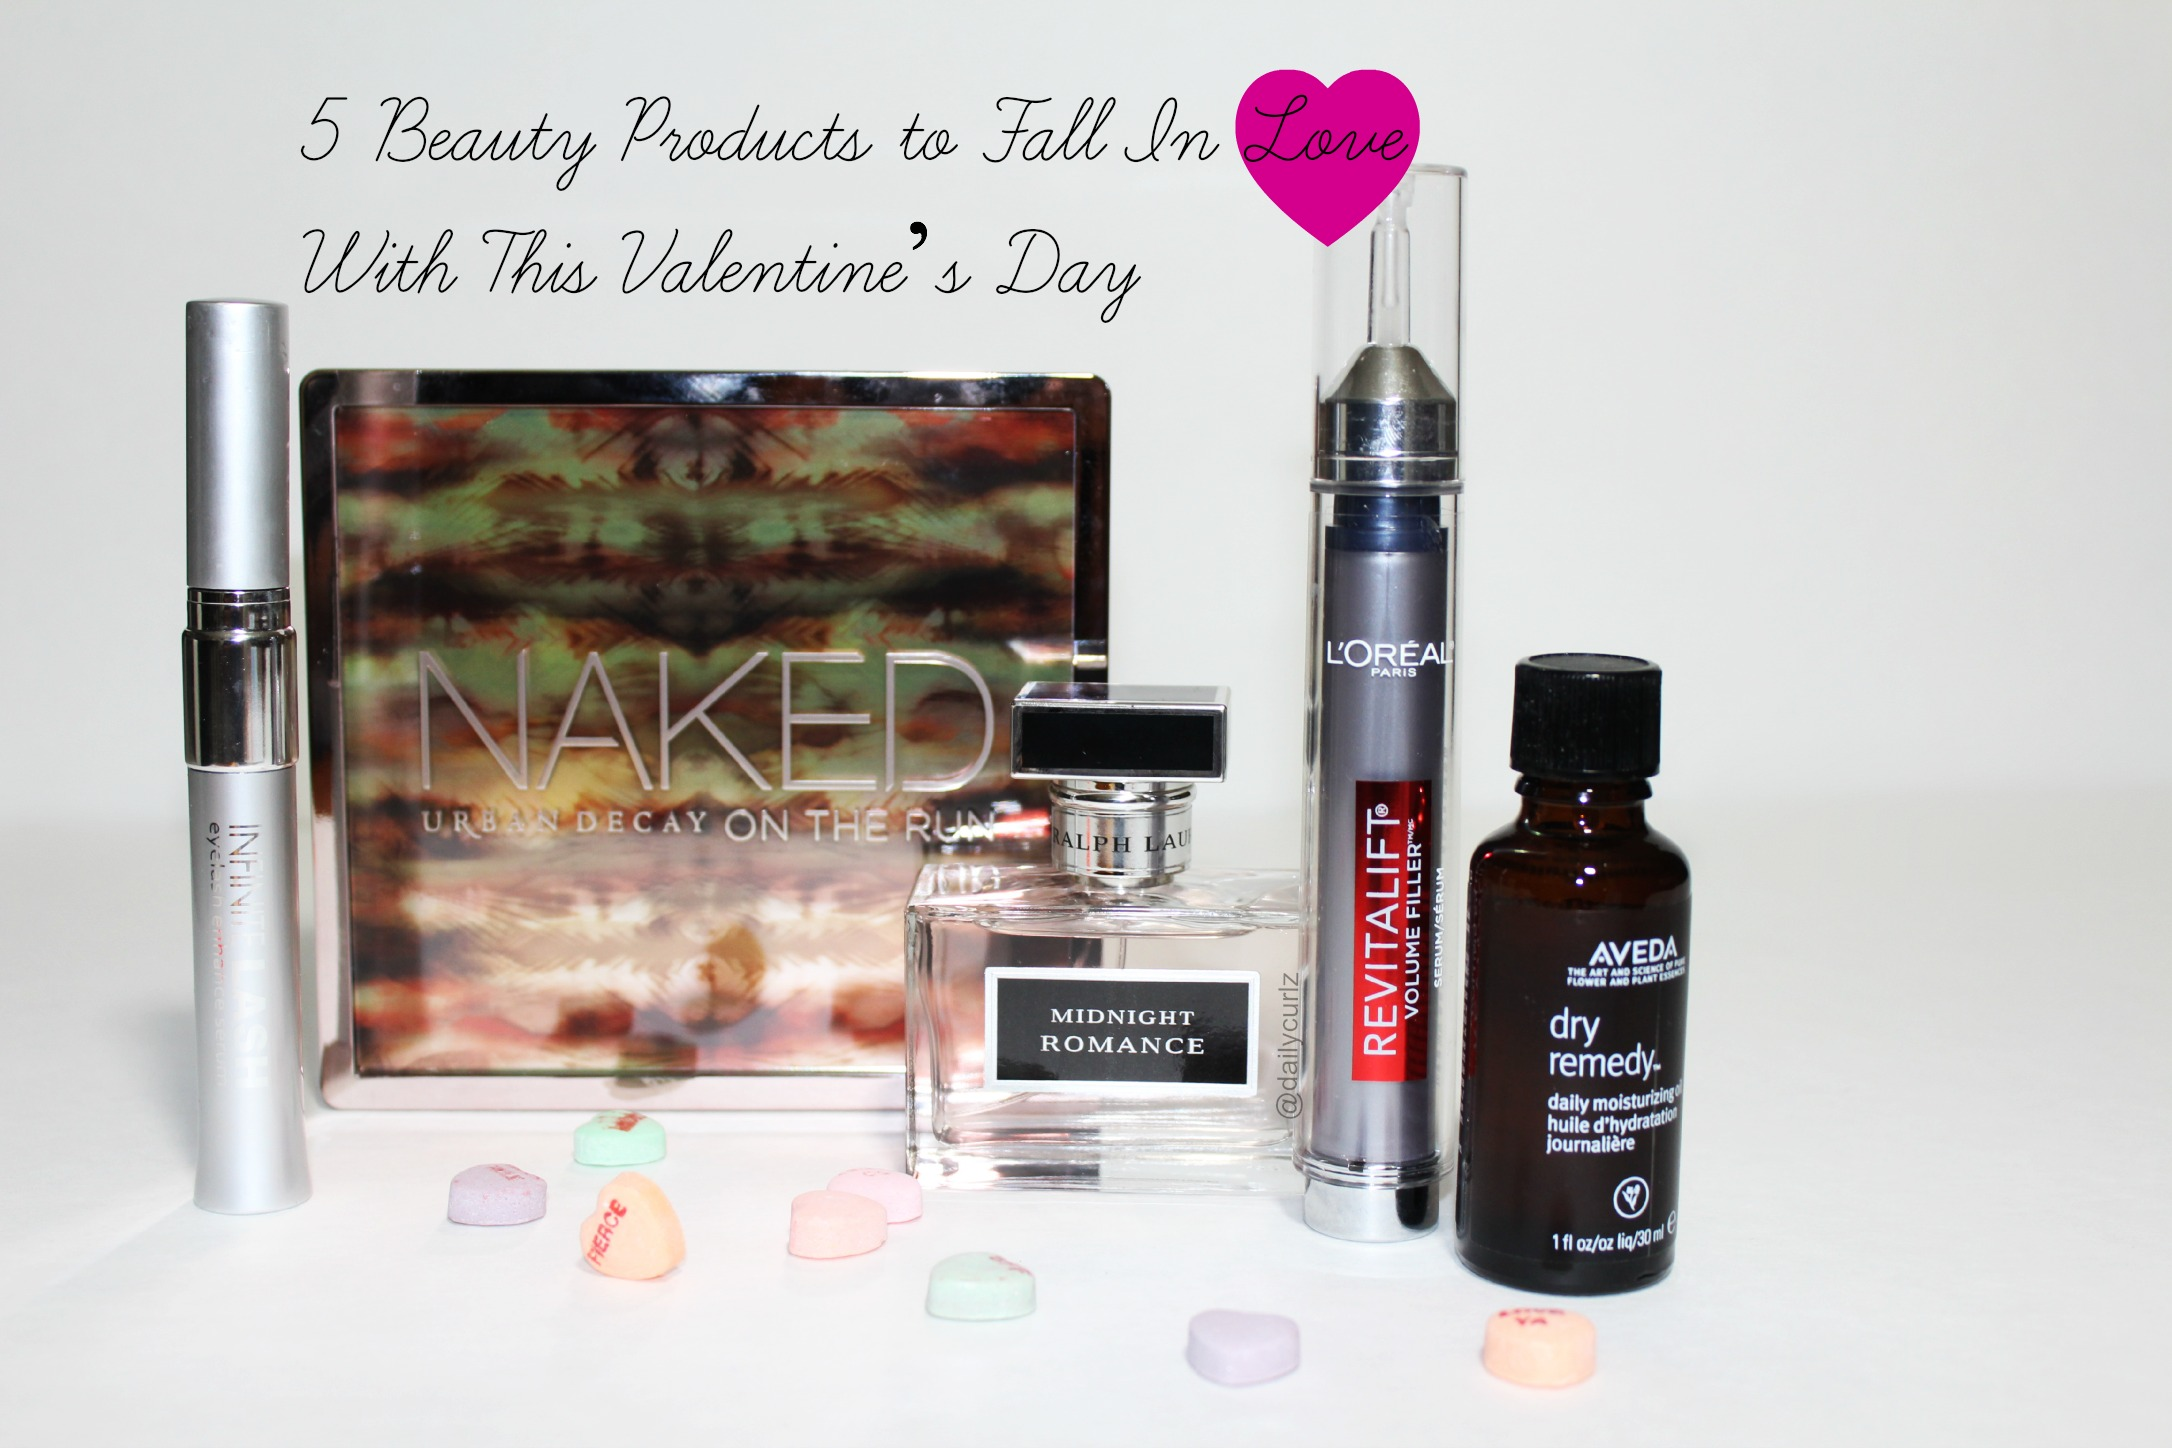 5 Beauty Products to Fall In Love With This Valentine's Day  5 Regalos de San Valentin para enamorar.